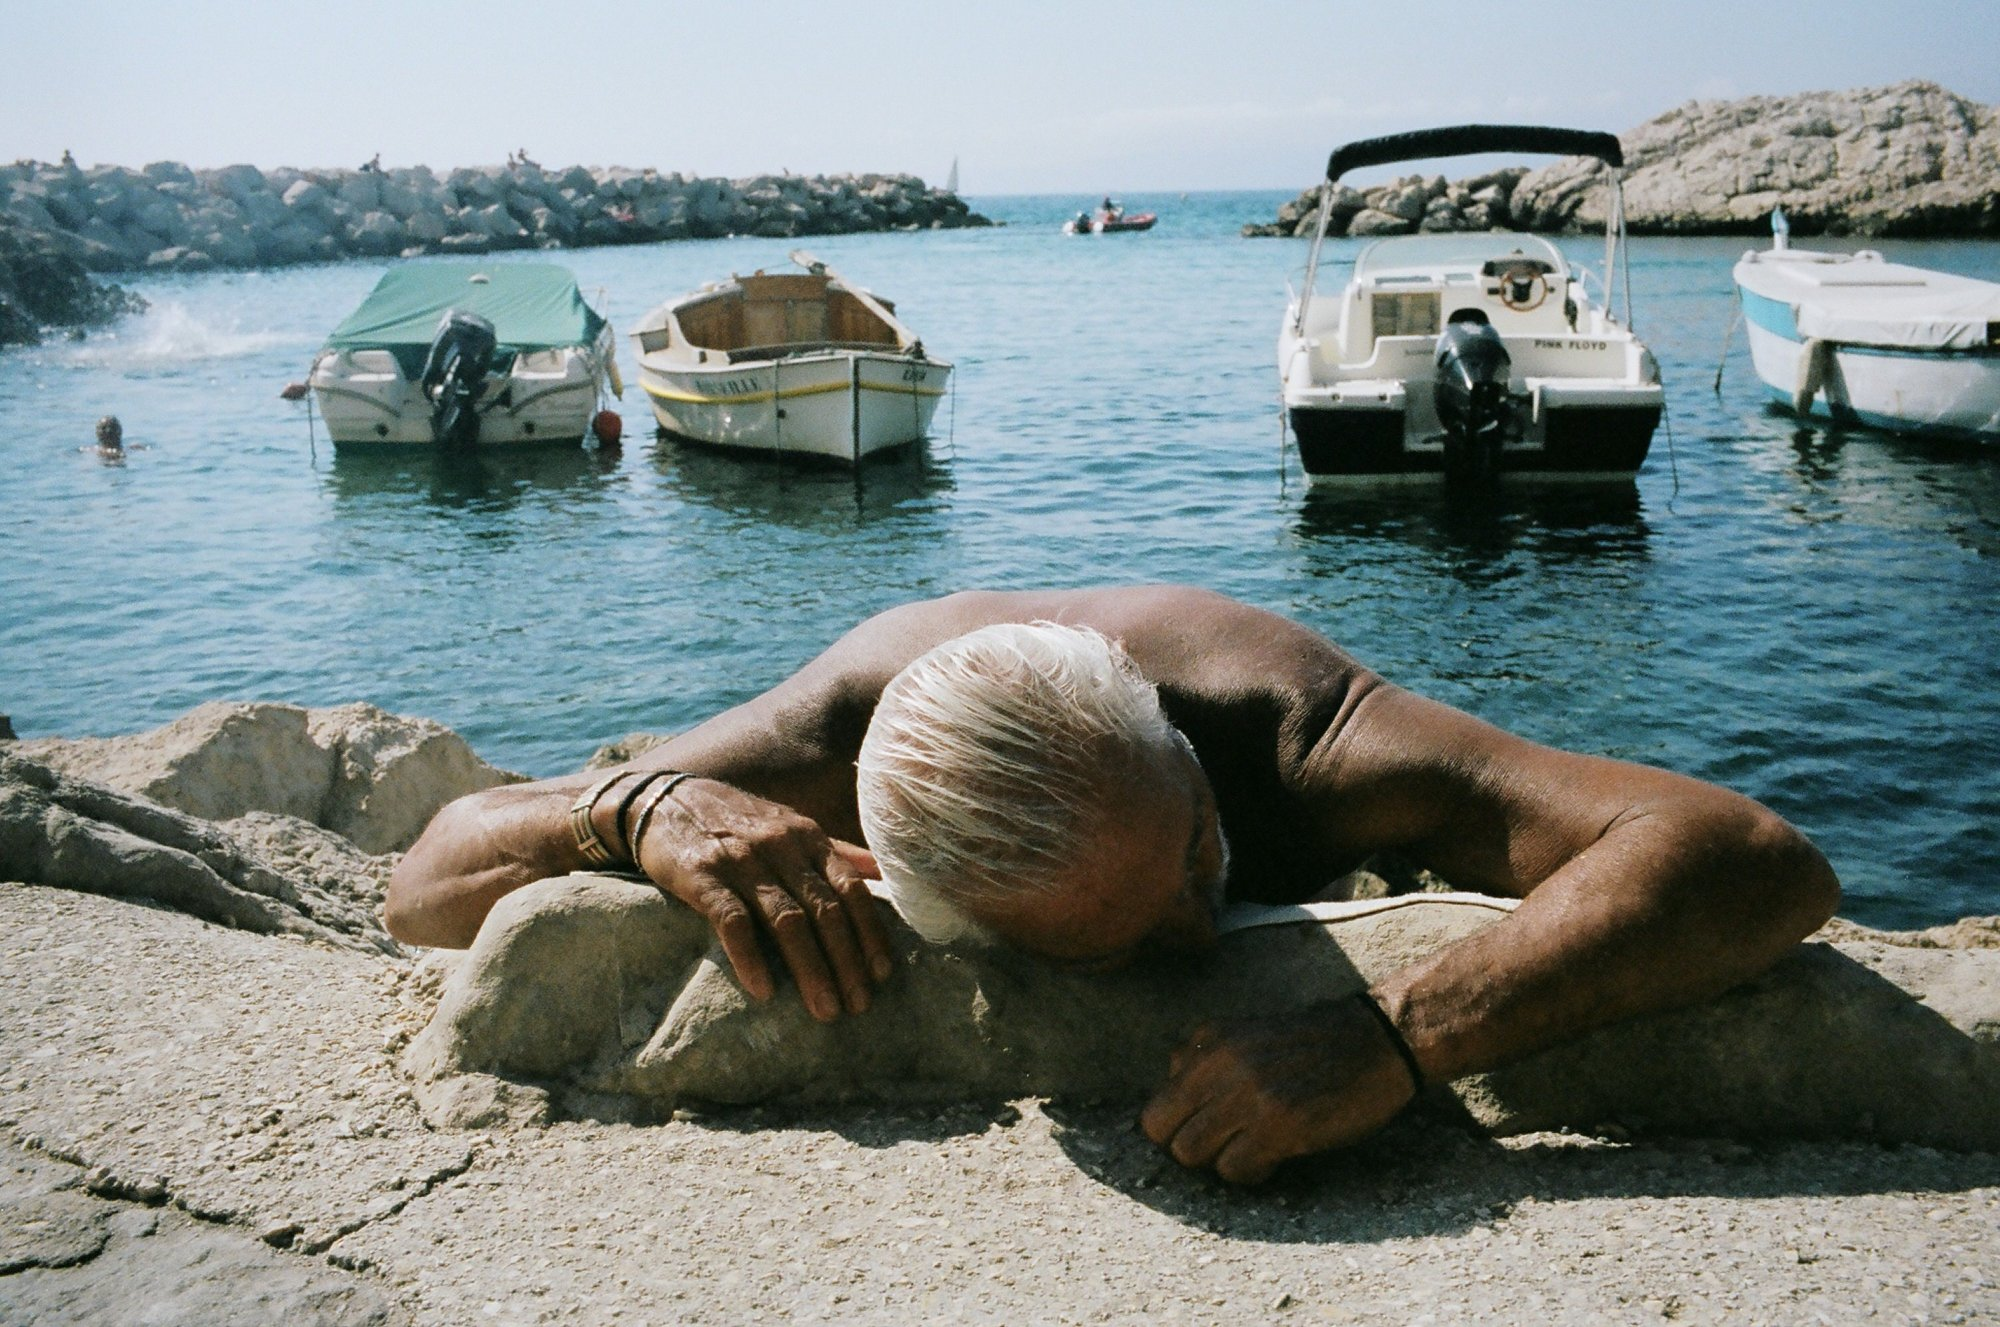 Marseille man at beach. Shot on Leica M6, Kodak Portra 400, around 1.8 meters on 35mm lens.